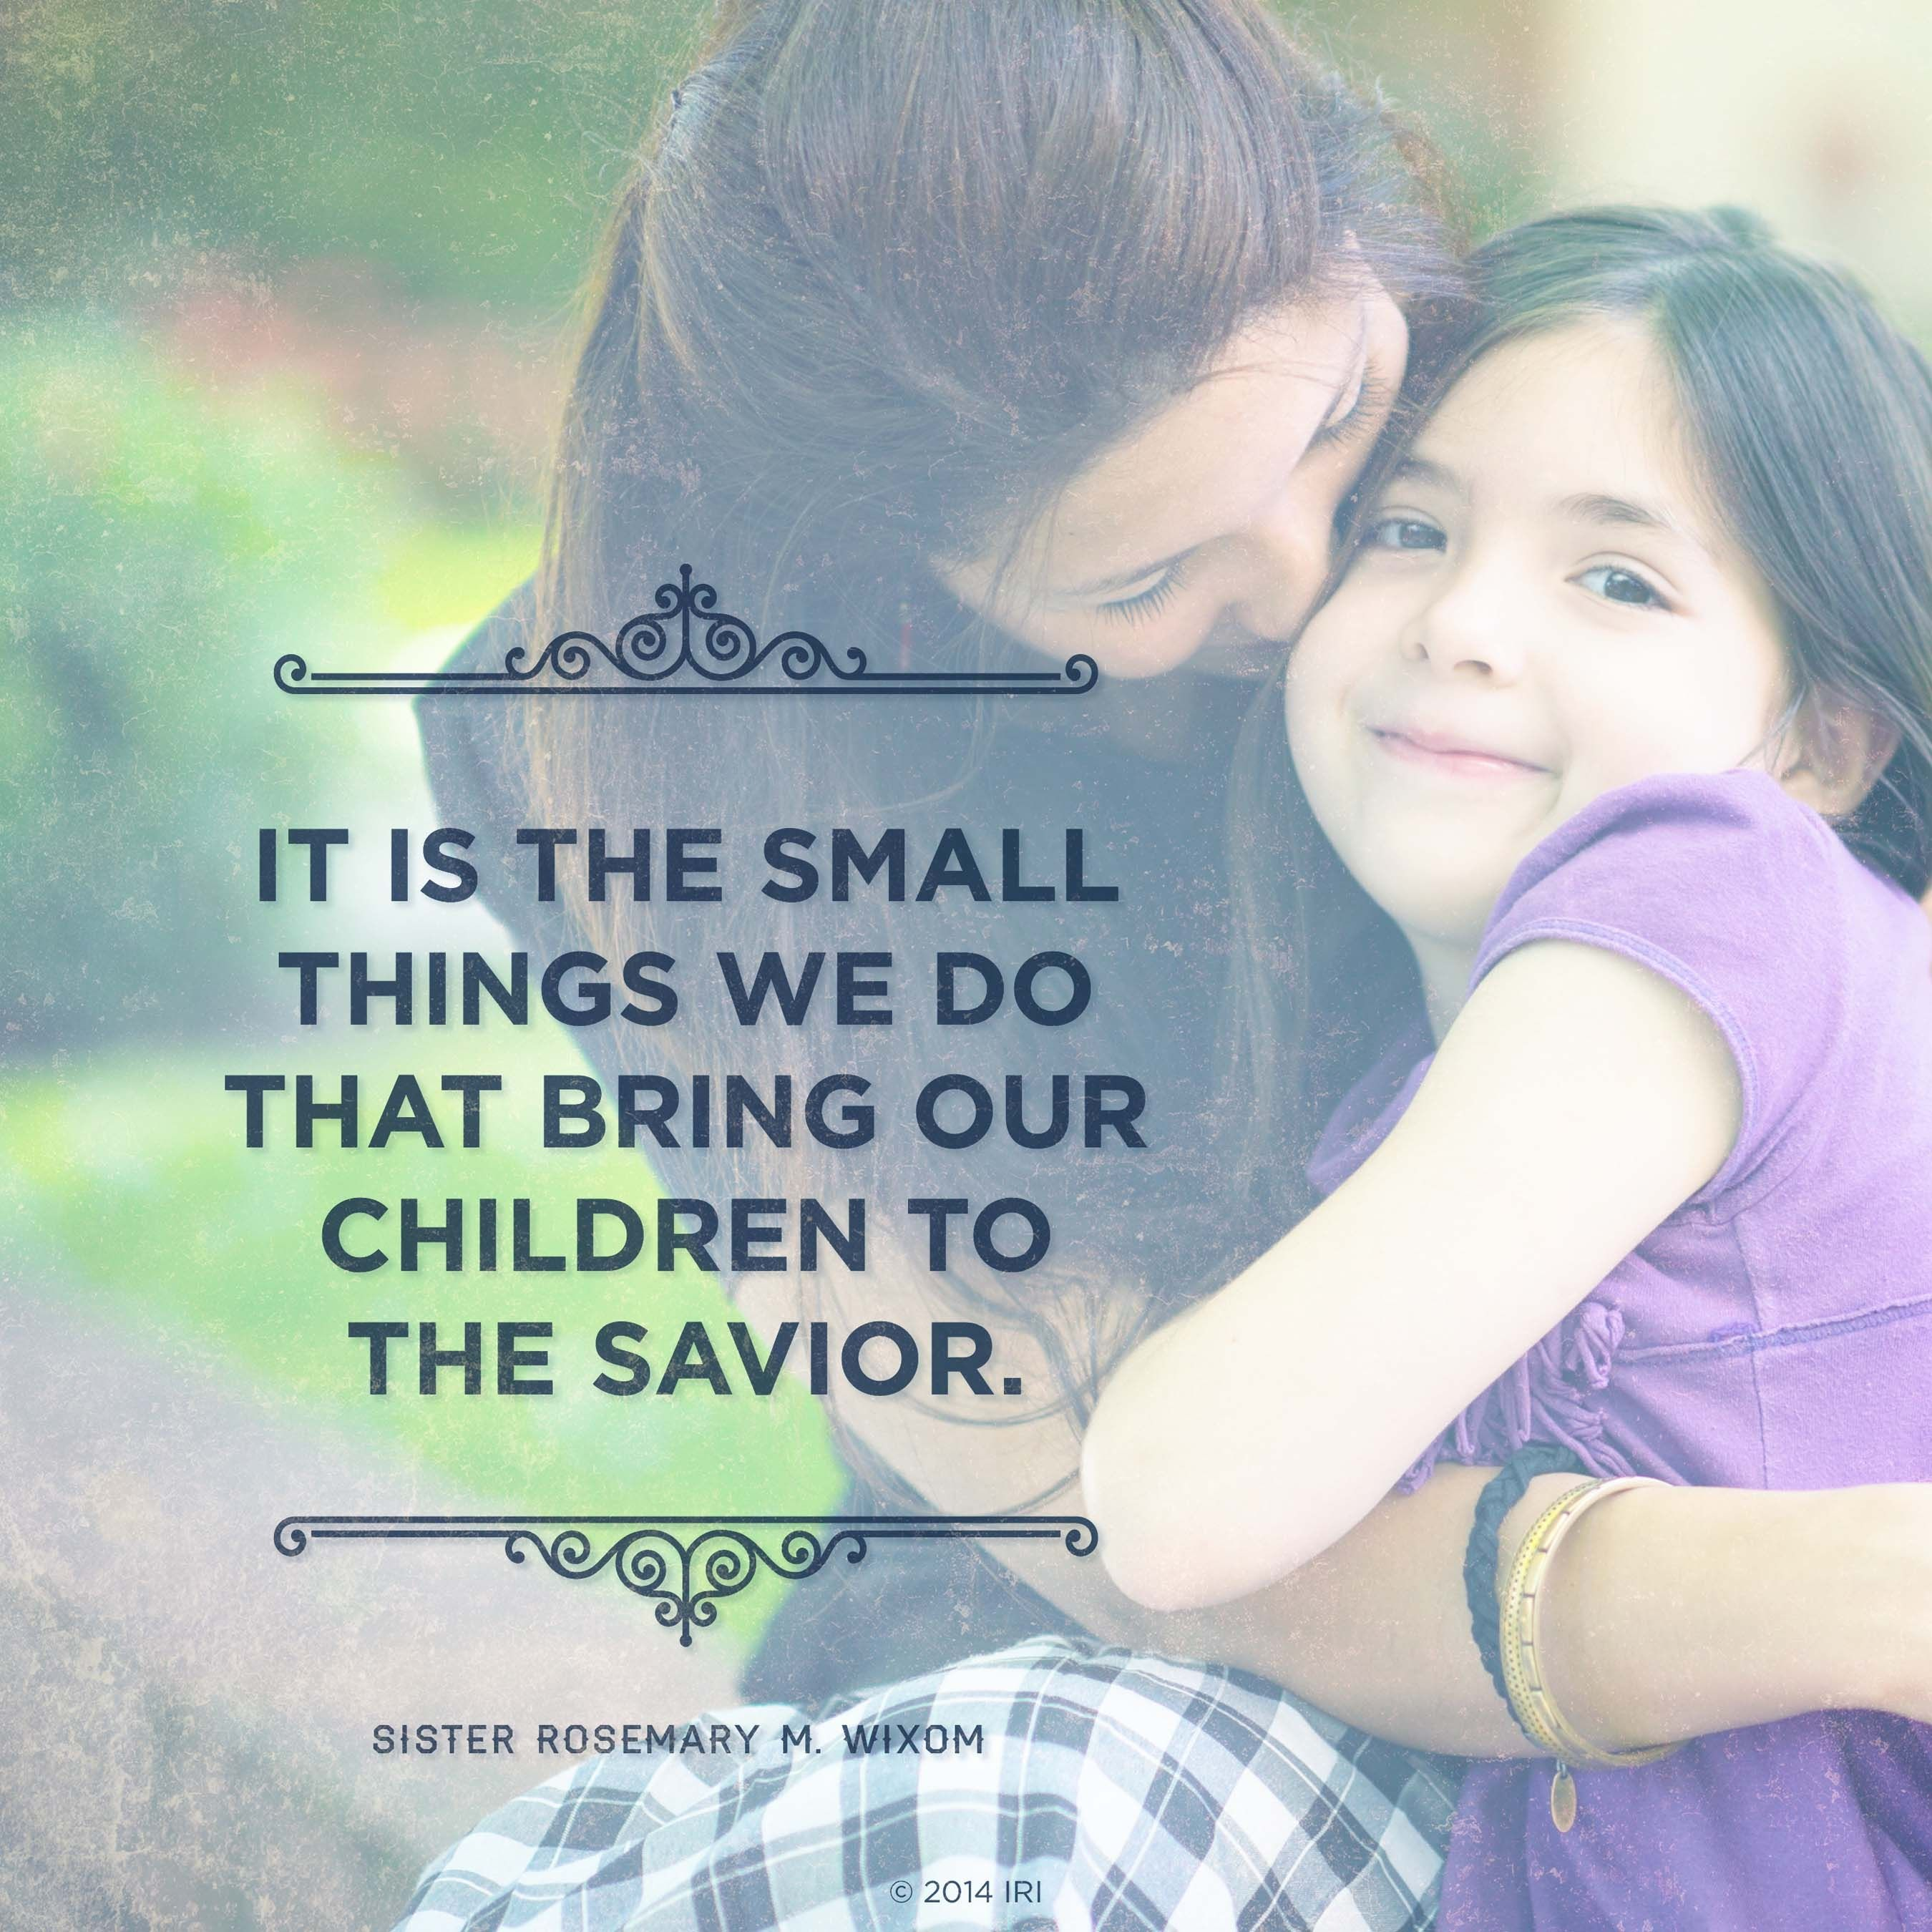 """""""It is the small things we do that bring our children to the Savior.""""—Sister Rosemary M. Wixom, """"Primary Leaders Encourage Families to Focus on the Savior"""""""